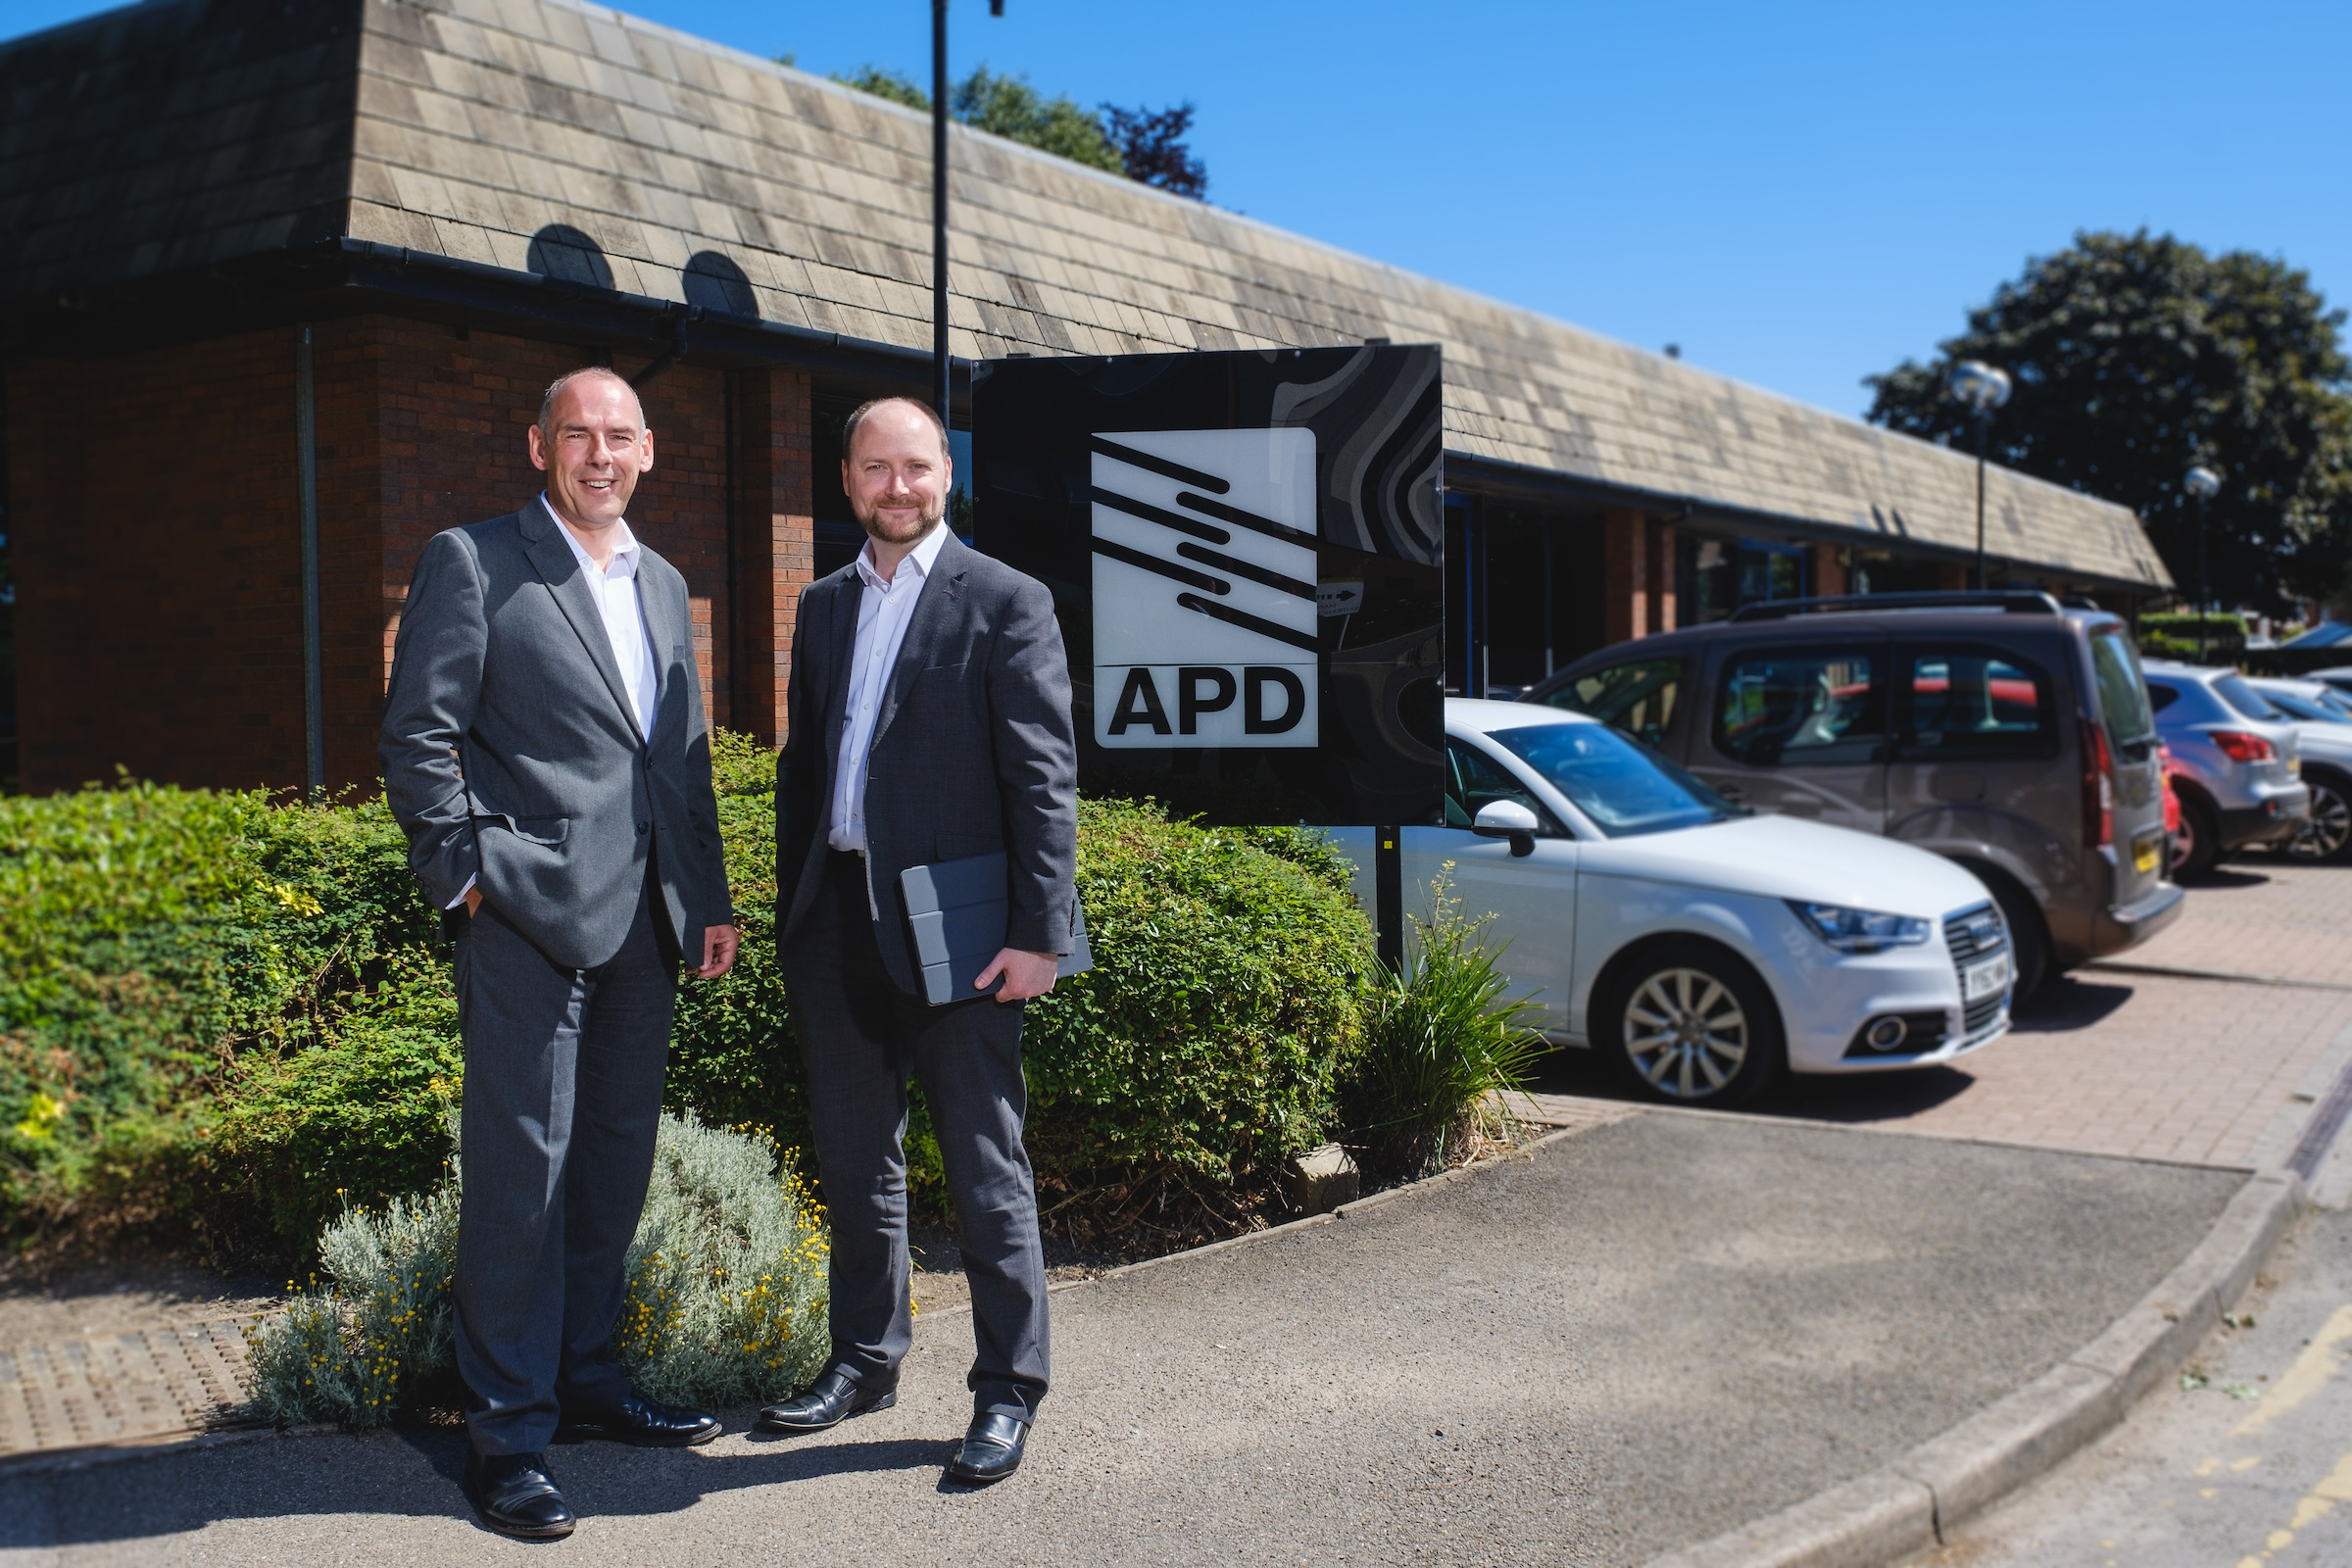 Ian Thompson, CEO of BRitish APCo with MIke Isherwood at APD COmmunications HQ